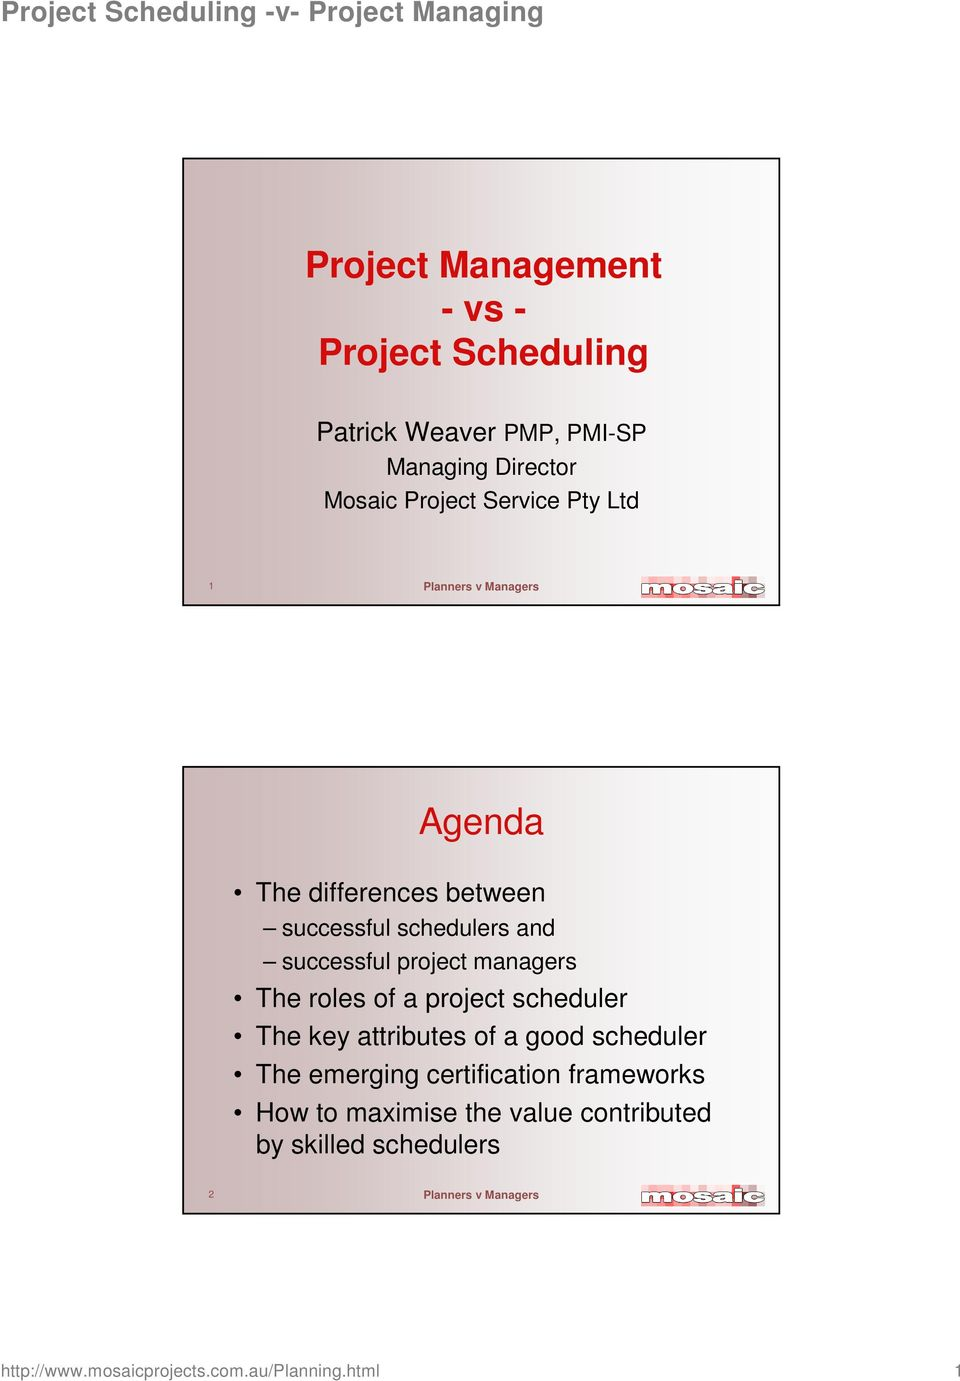 roles of a project scheduler The key attributes of a good scheduler The emerging certification frameworks